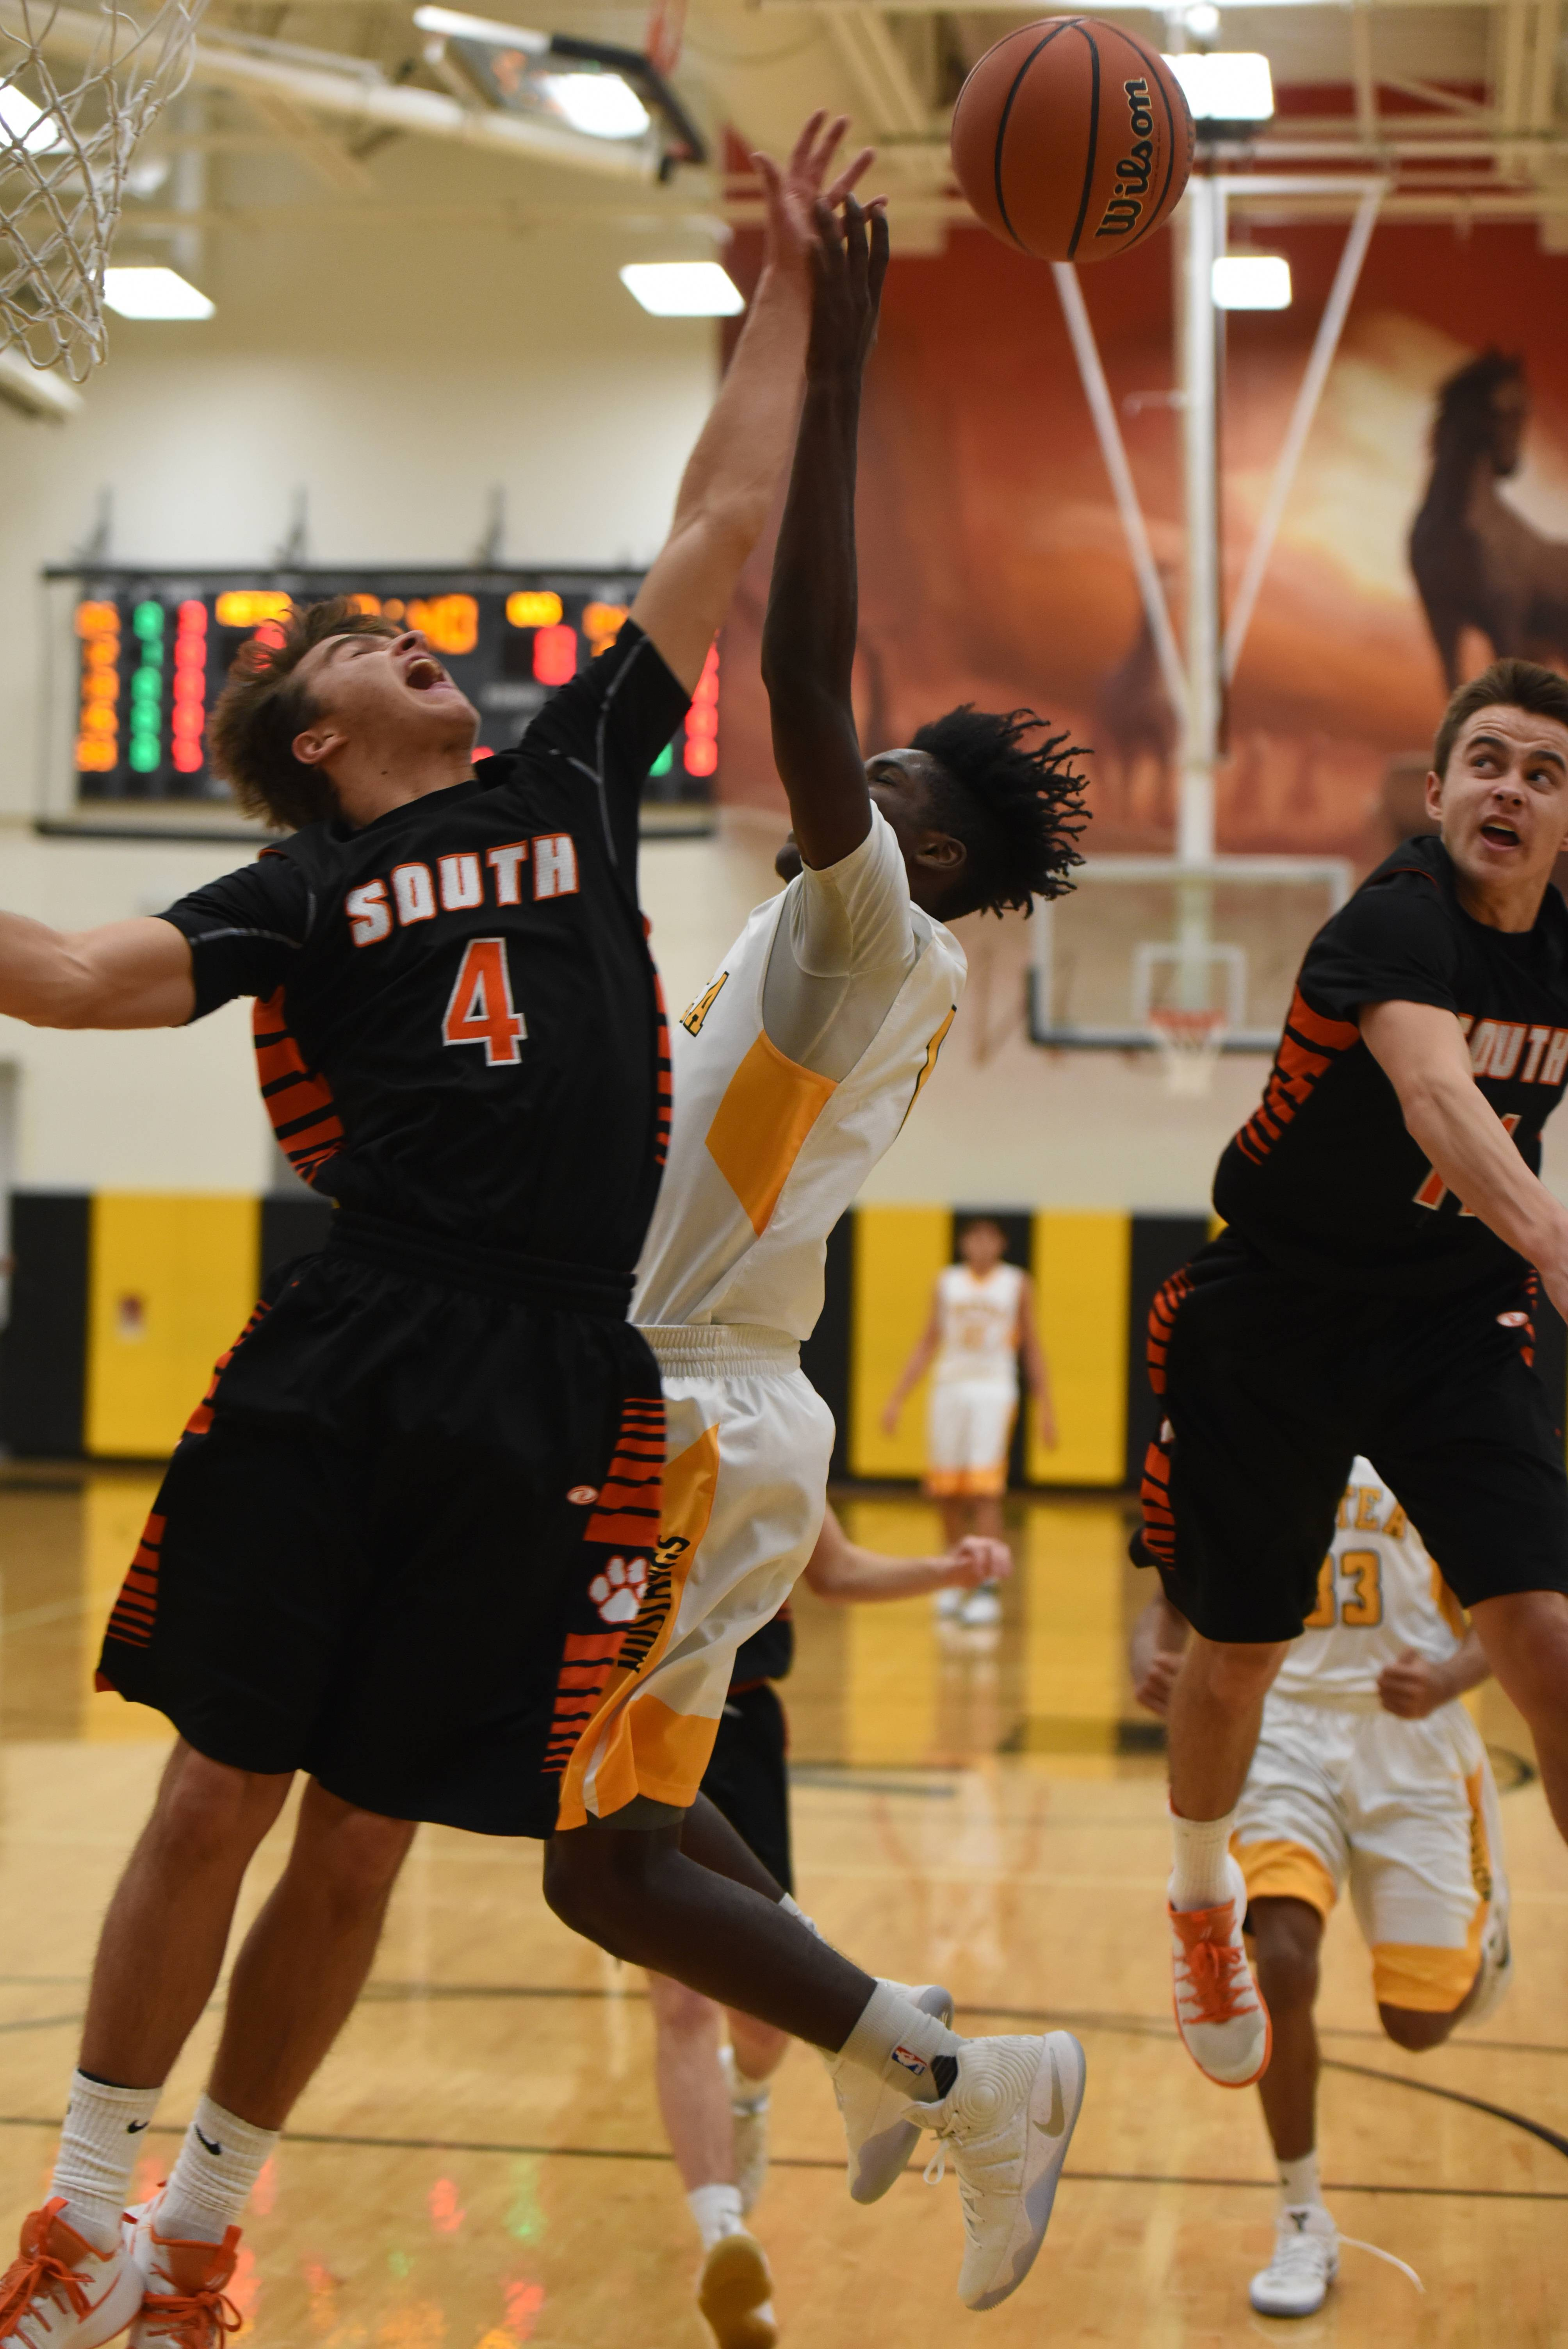 Wheaton Warrenville South's Jake Healy (04) takes a shot over Jayden Reed of Metea during the Wheaton Warrenville South at Metea Valley boys basketball game Friday.